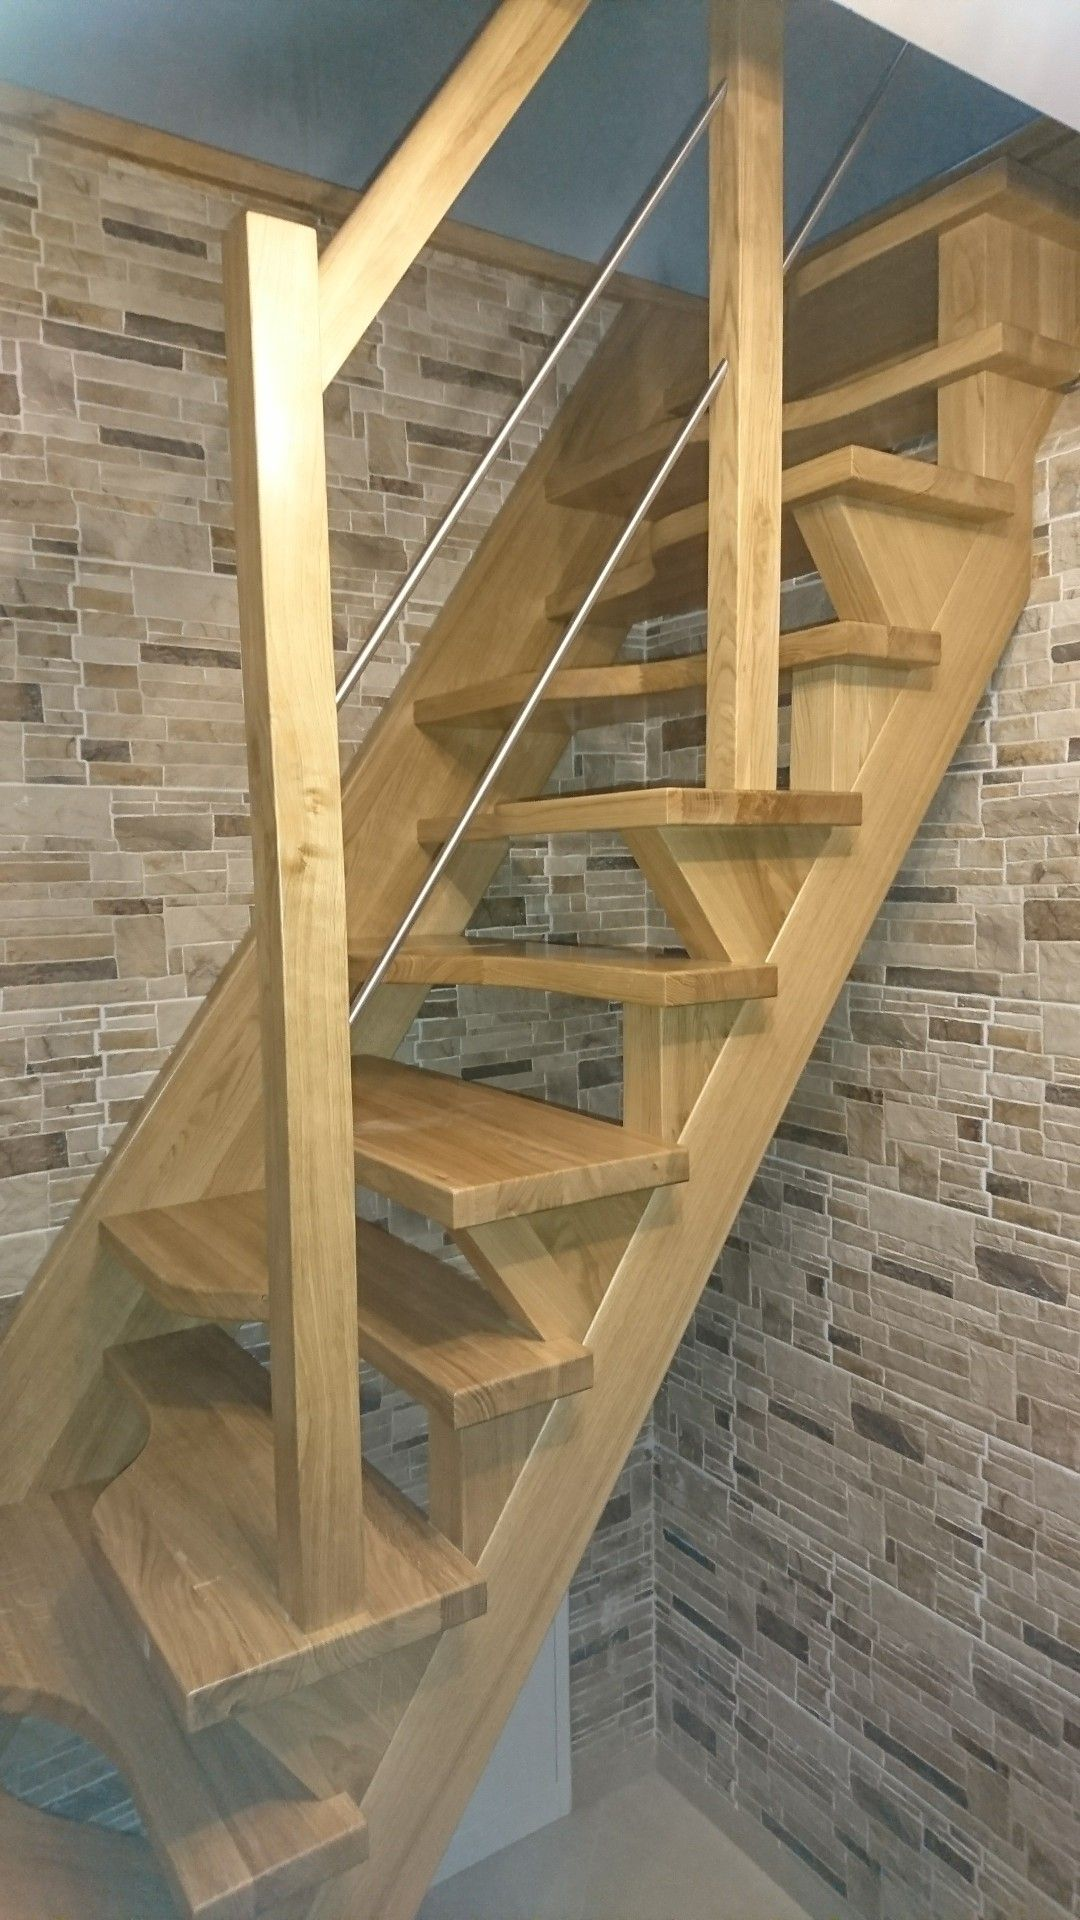 Attic Stairs With The Left And Right Style Steps Stairs Design Stairs Diy Stairs